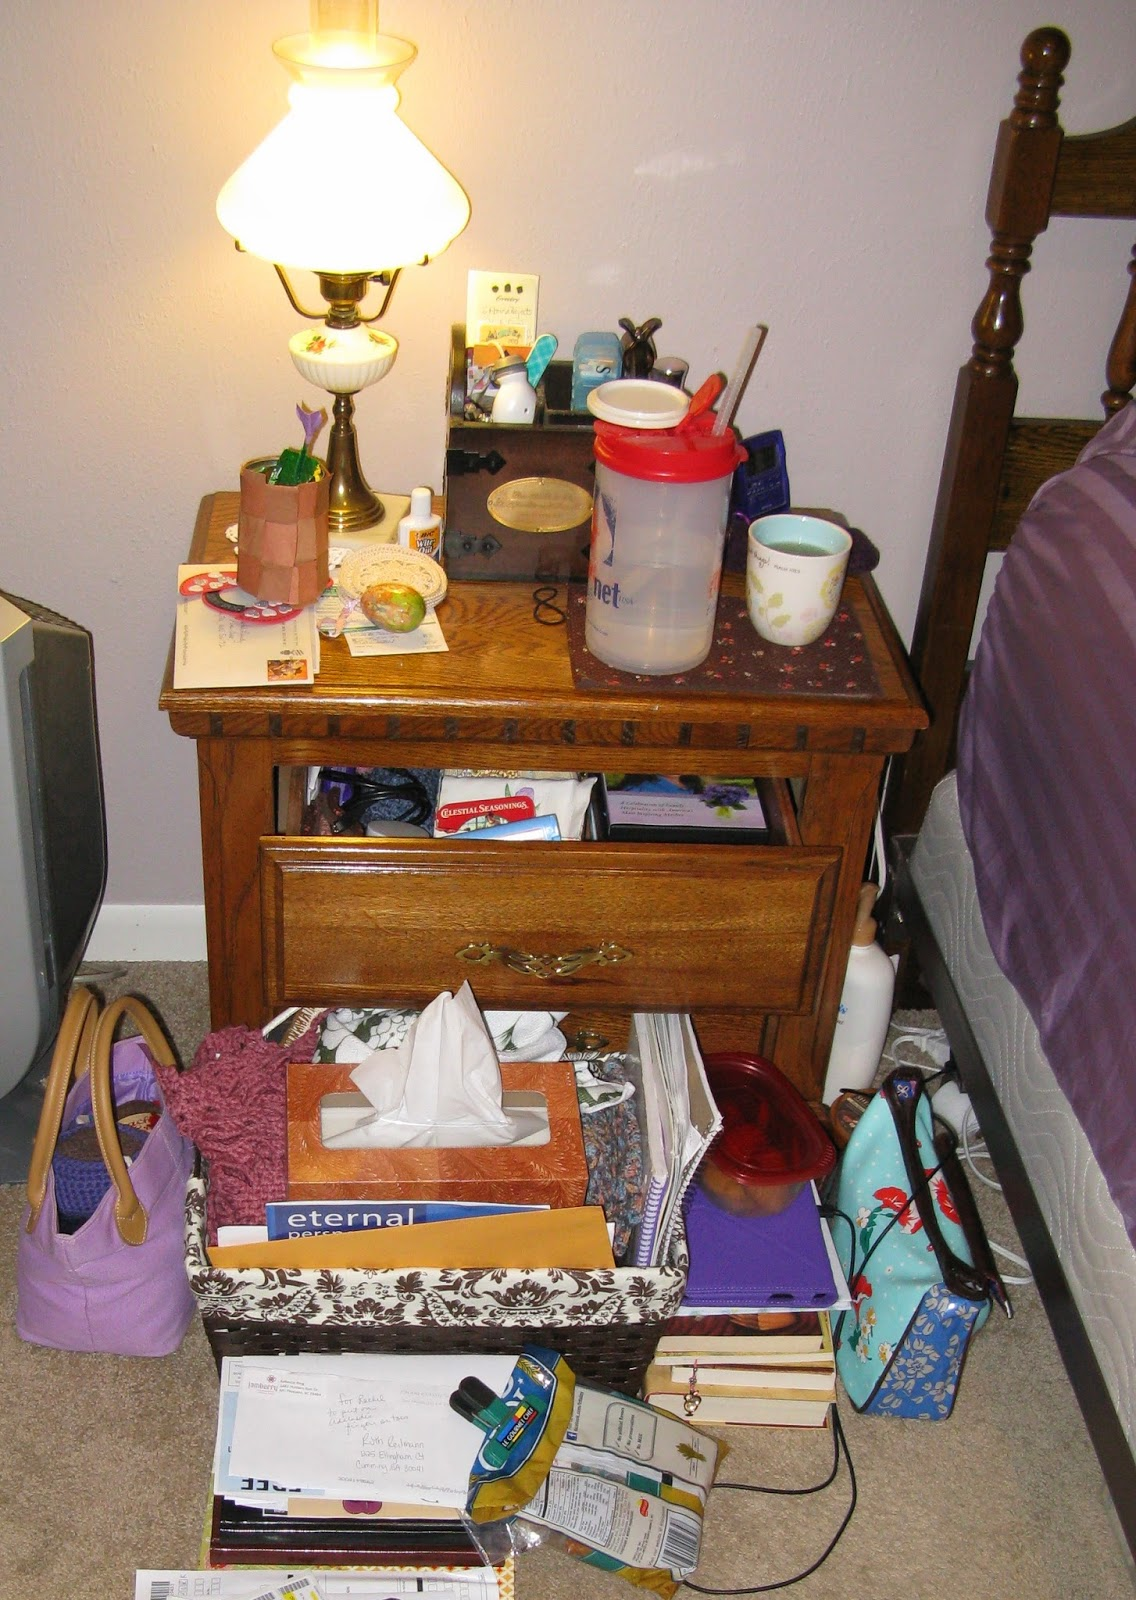 a messy nightstand and bedside